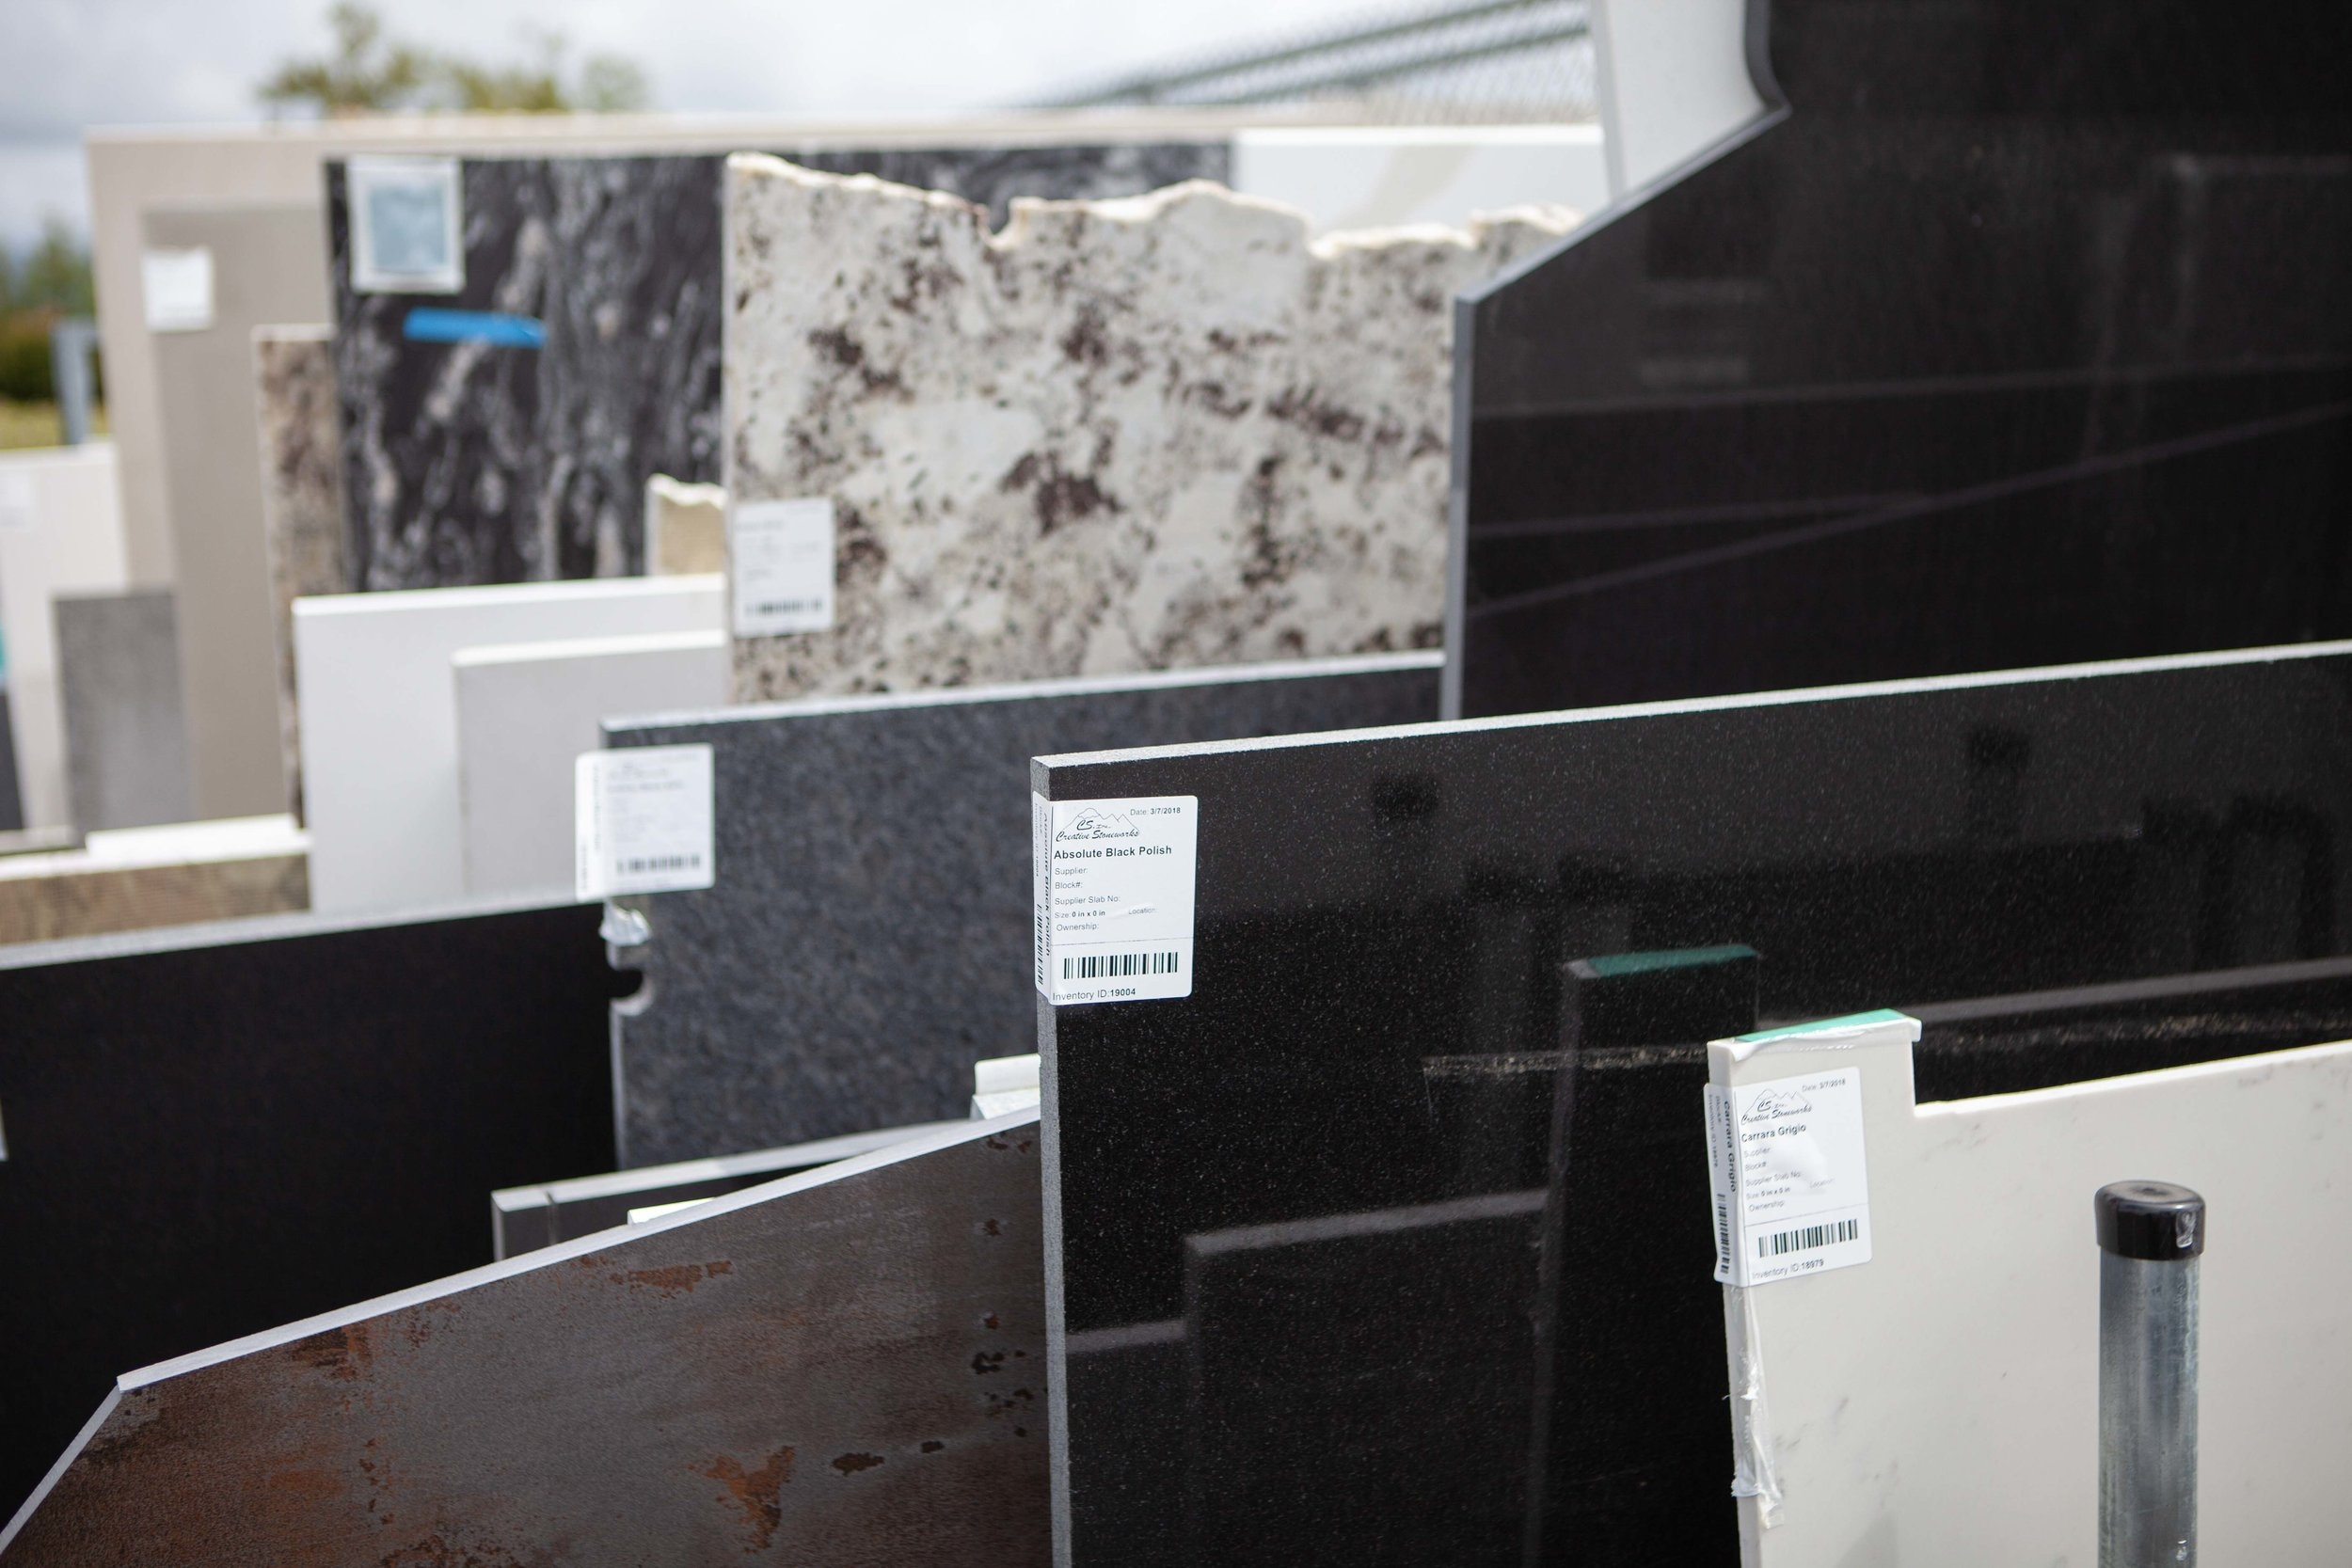 STONE Selection - Come browse our huge stone yard full of hand selected slabs of every color and texture.  We'll help you find the perfect fit for your design and maintenance expectations.